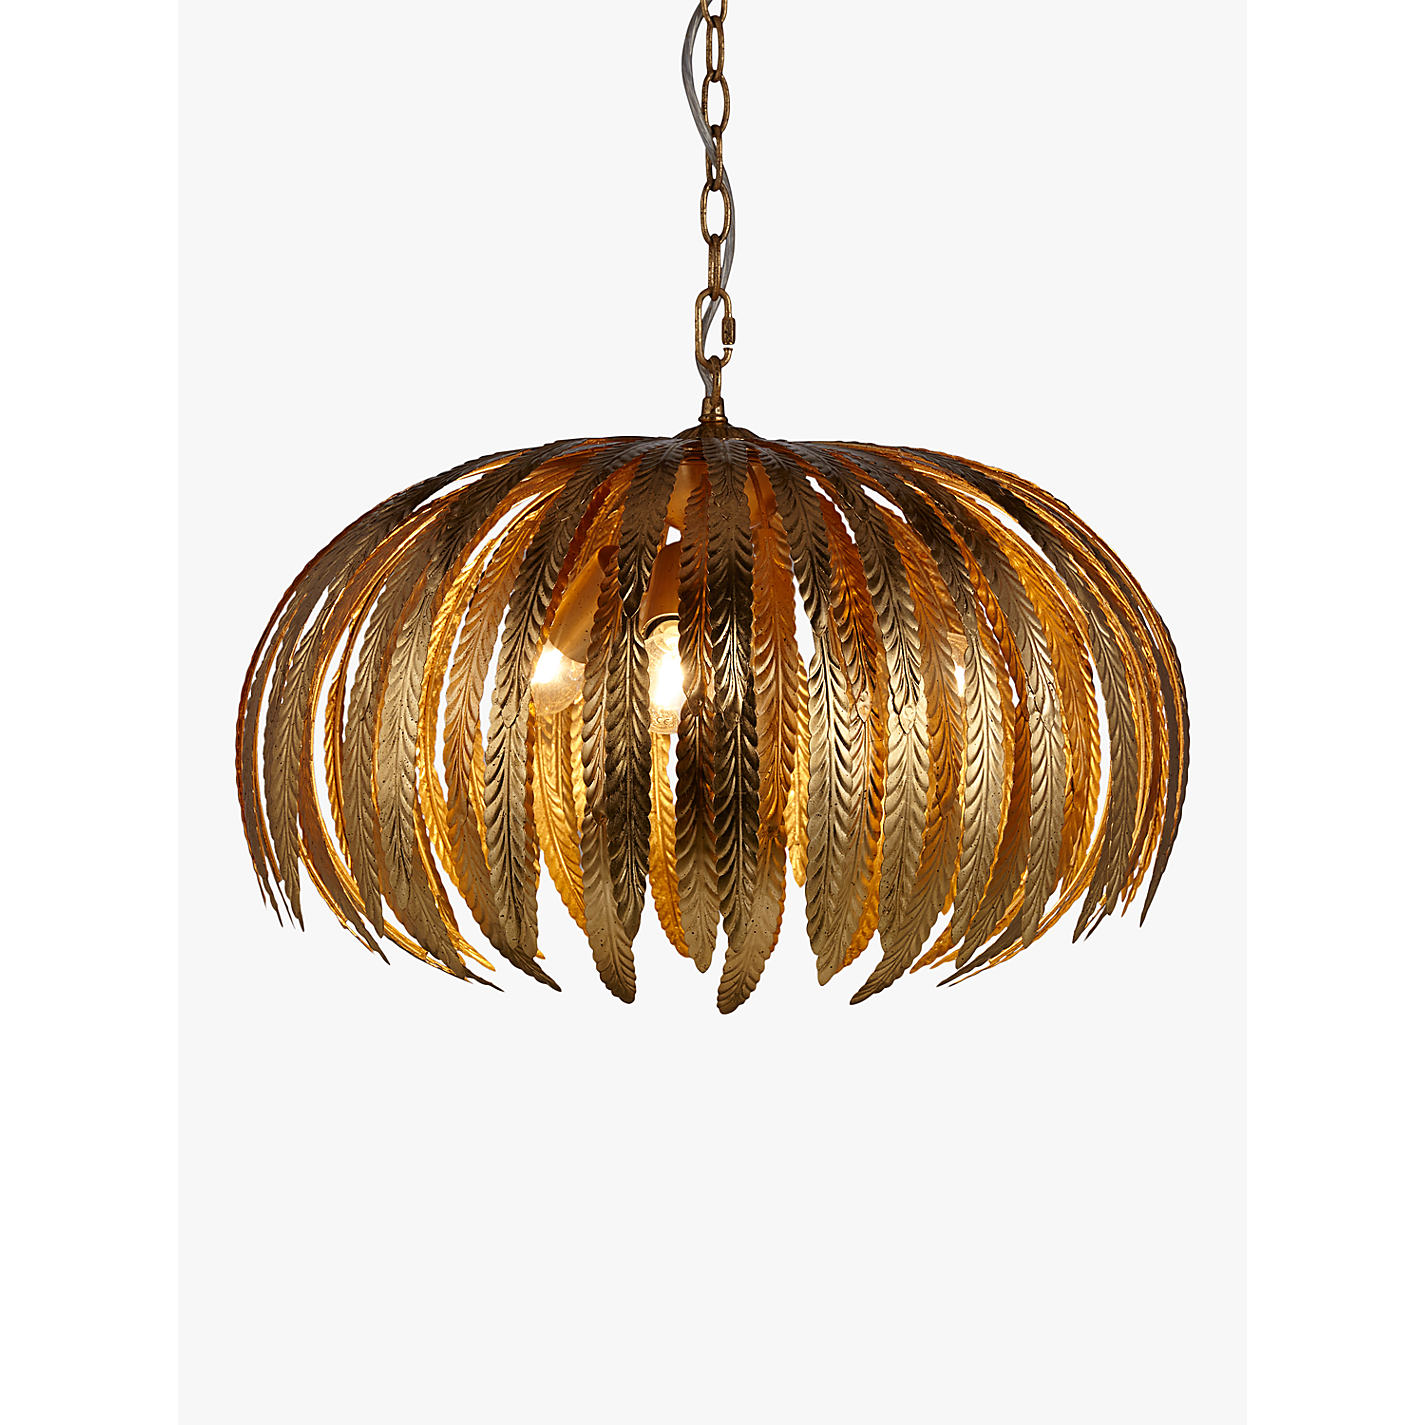 Alium Ceiling Light John Lewis : John lewis ceiling lights energywarden